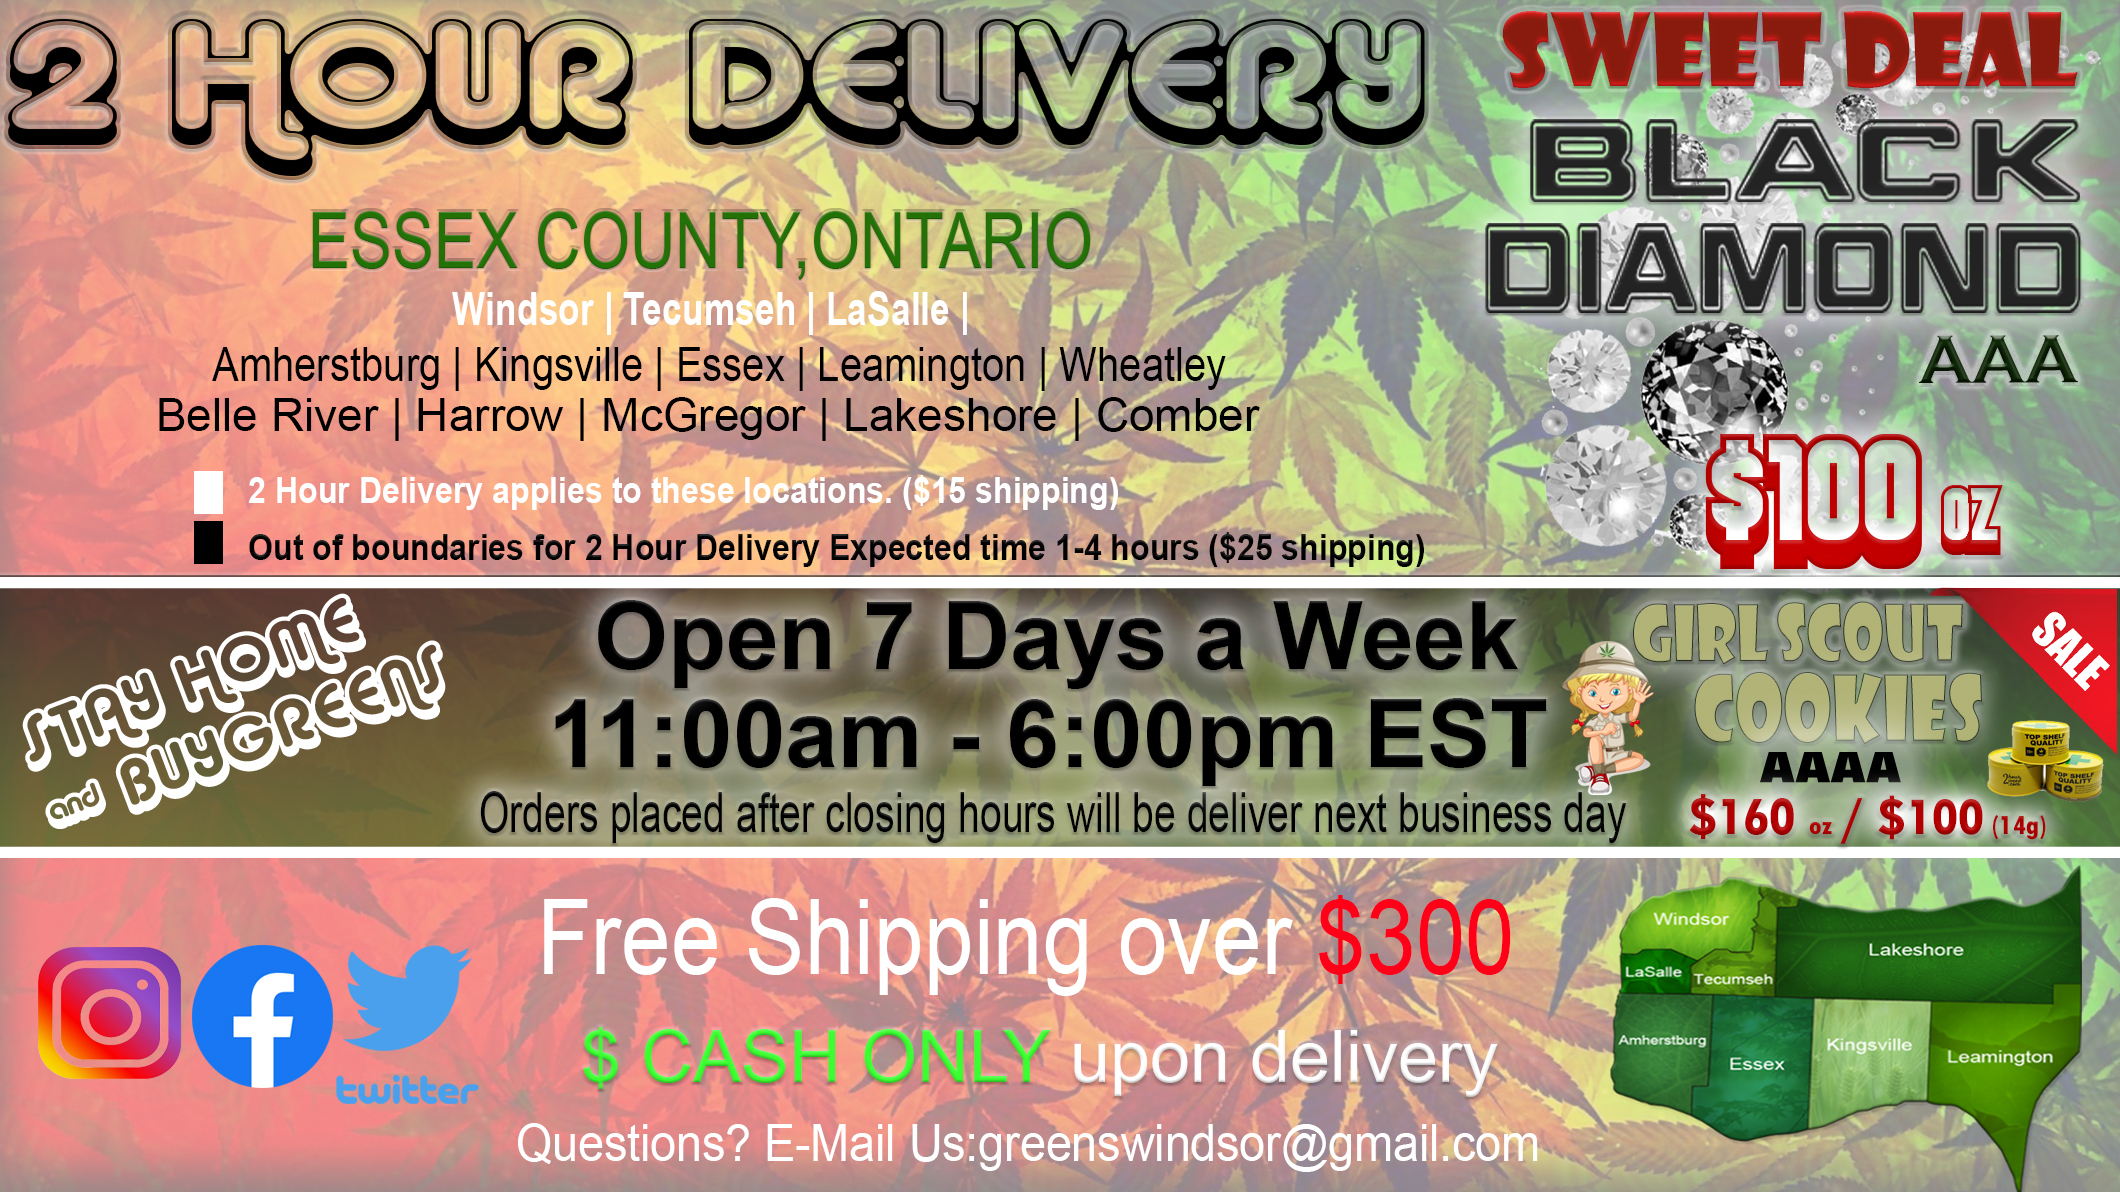 BuyGreens.Online - 2 Hour Delivery